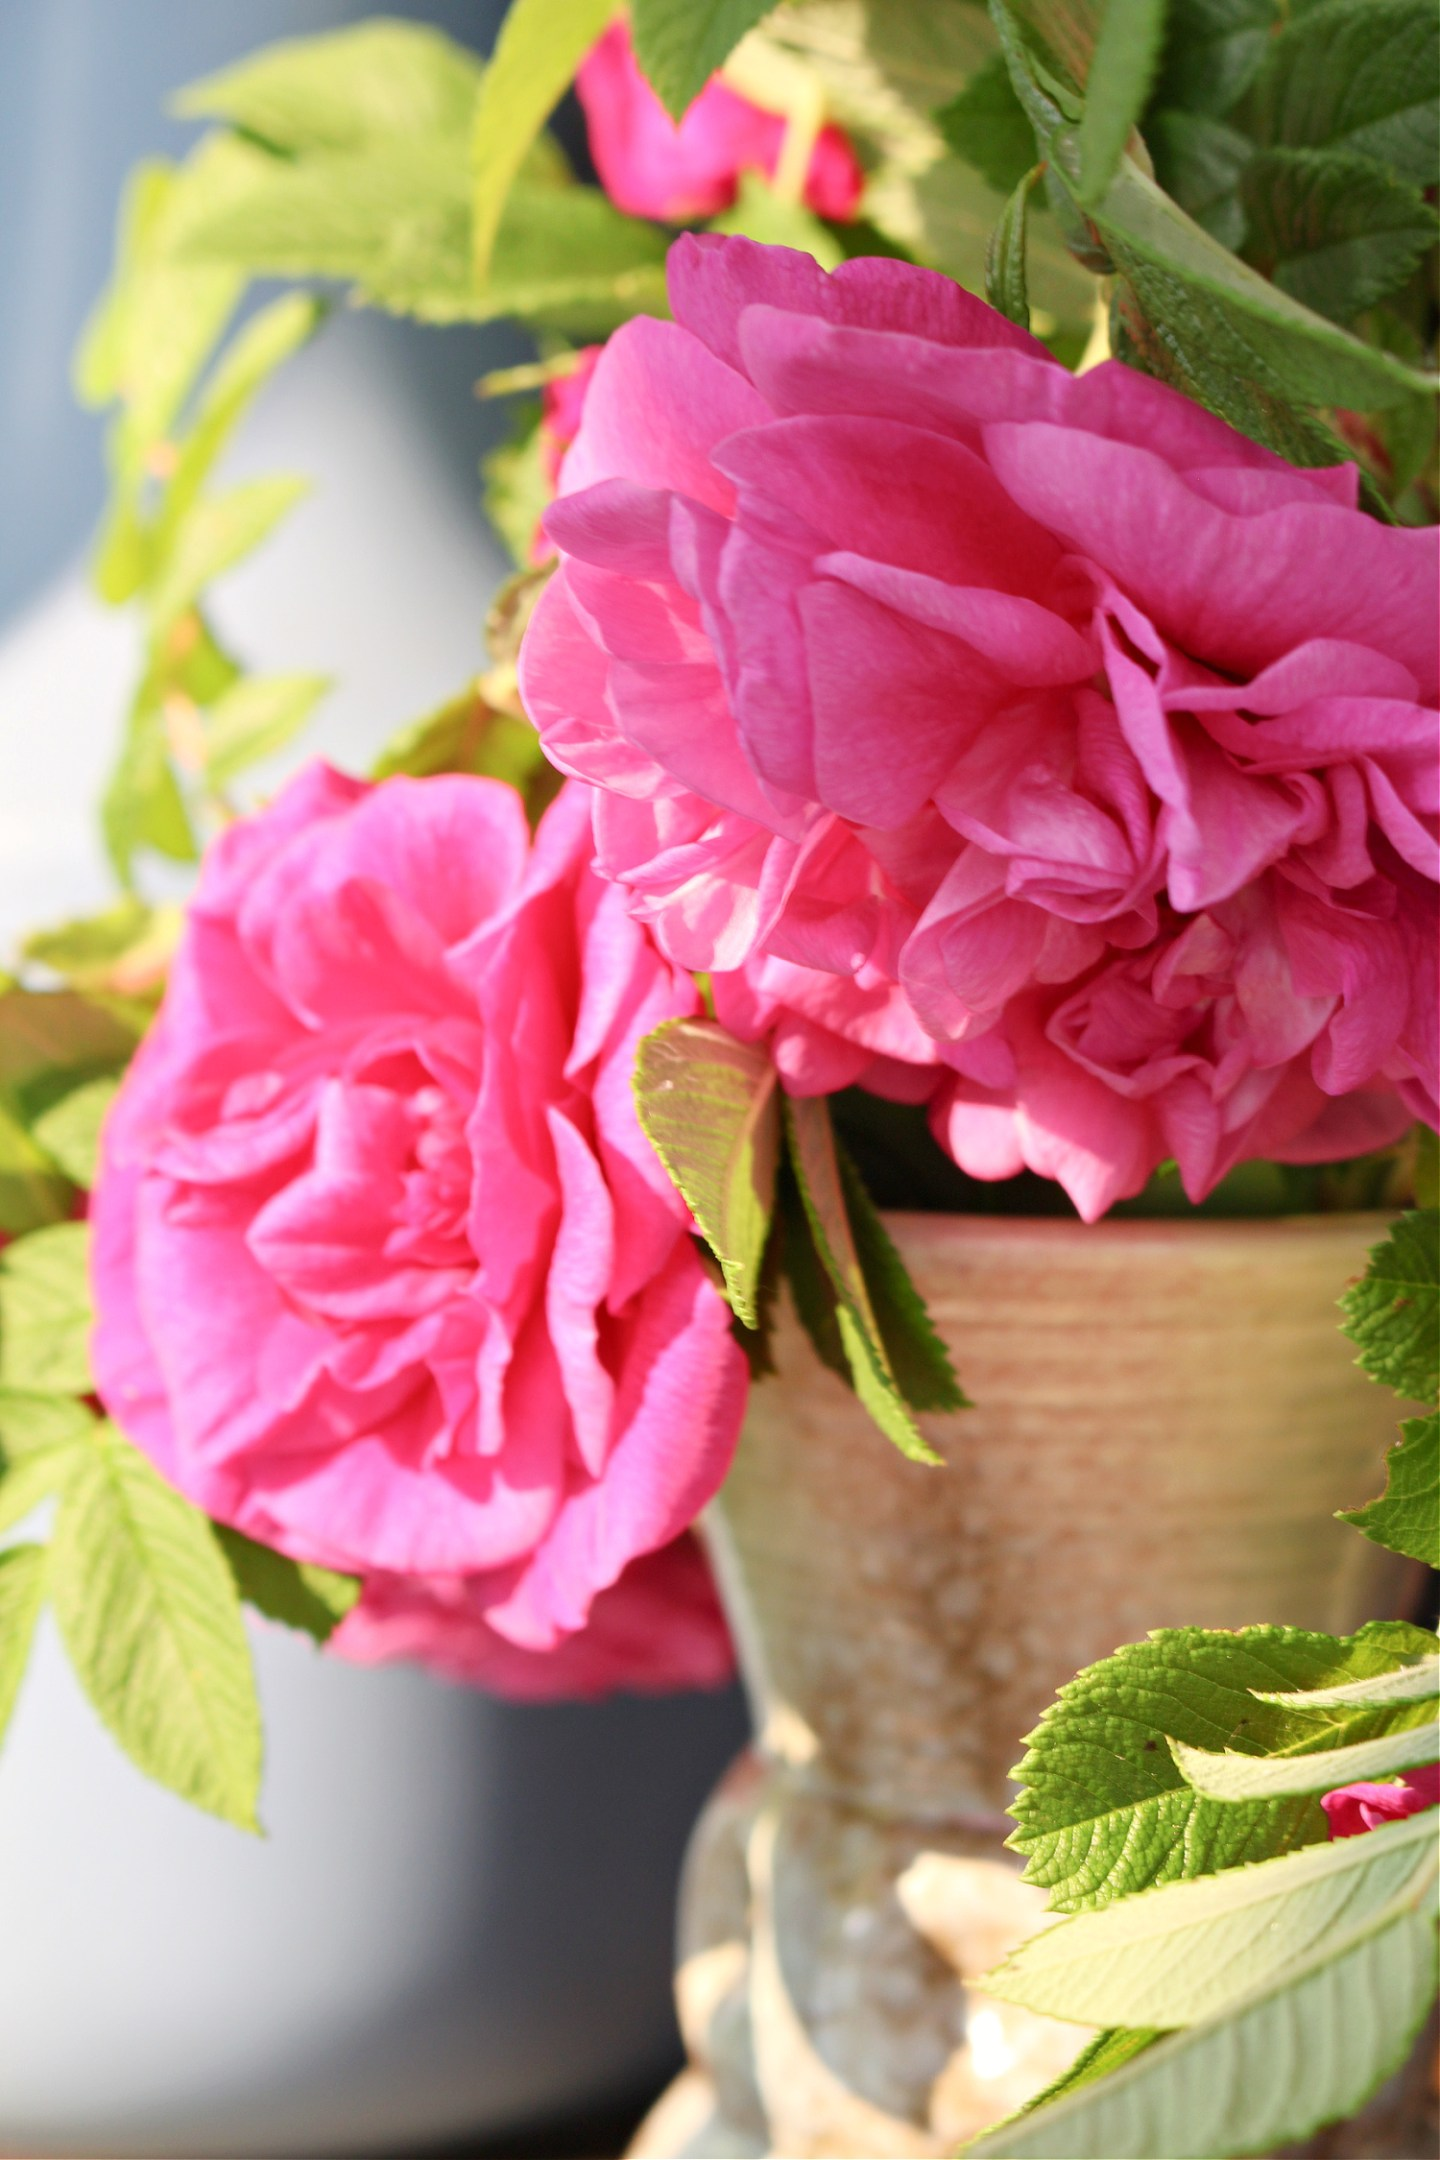 Things to Make With Rose Petals